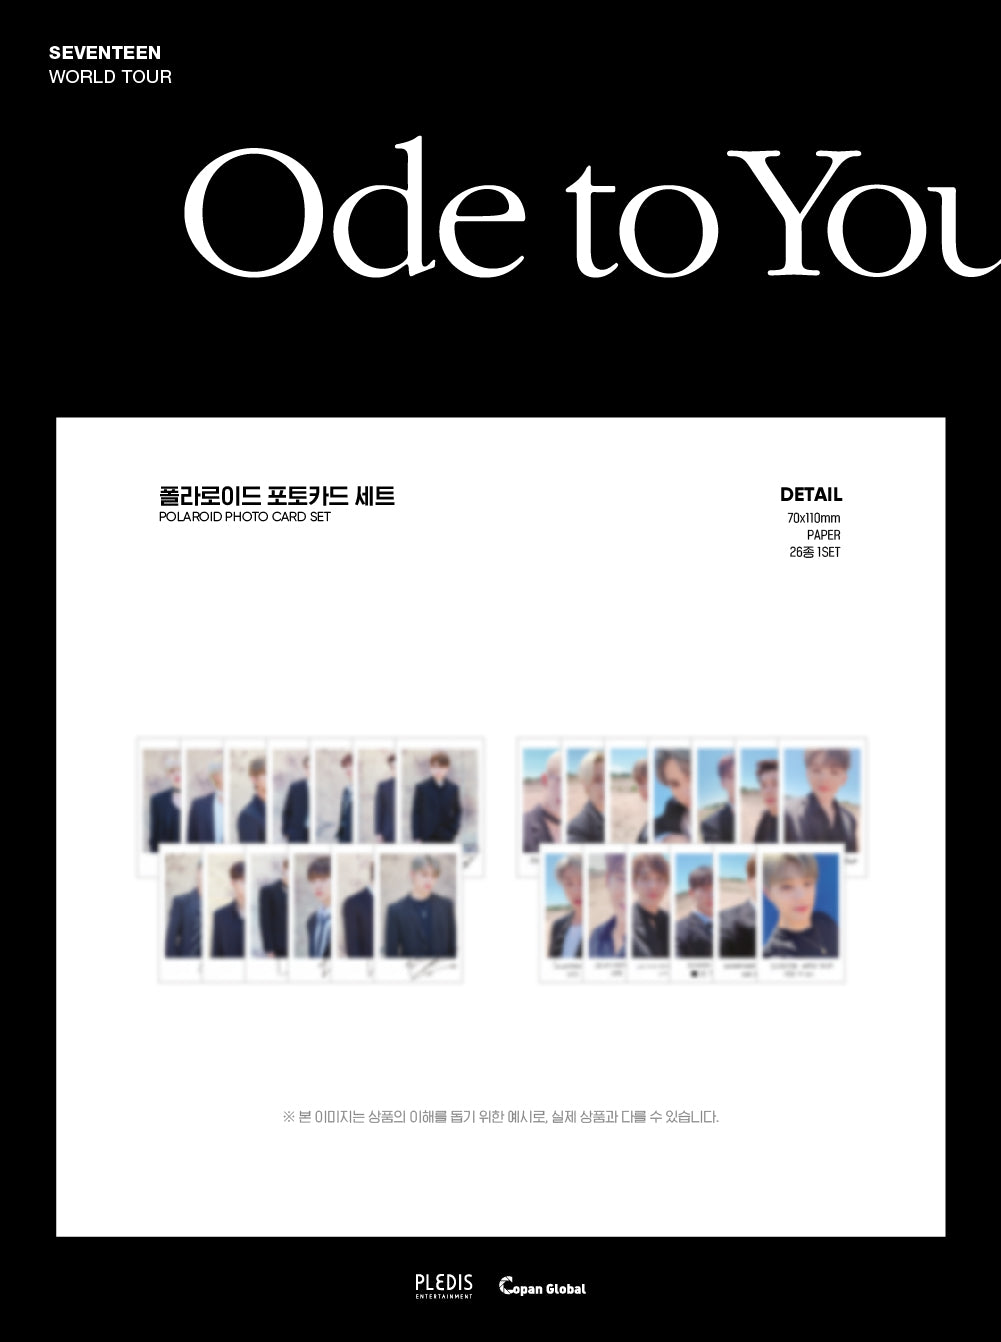 Official SEVENTEEN - Ode To You 2019 Polaroid Photo Card Set (Komplett)